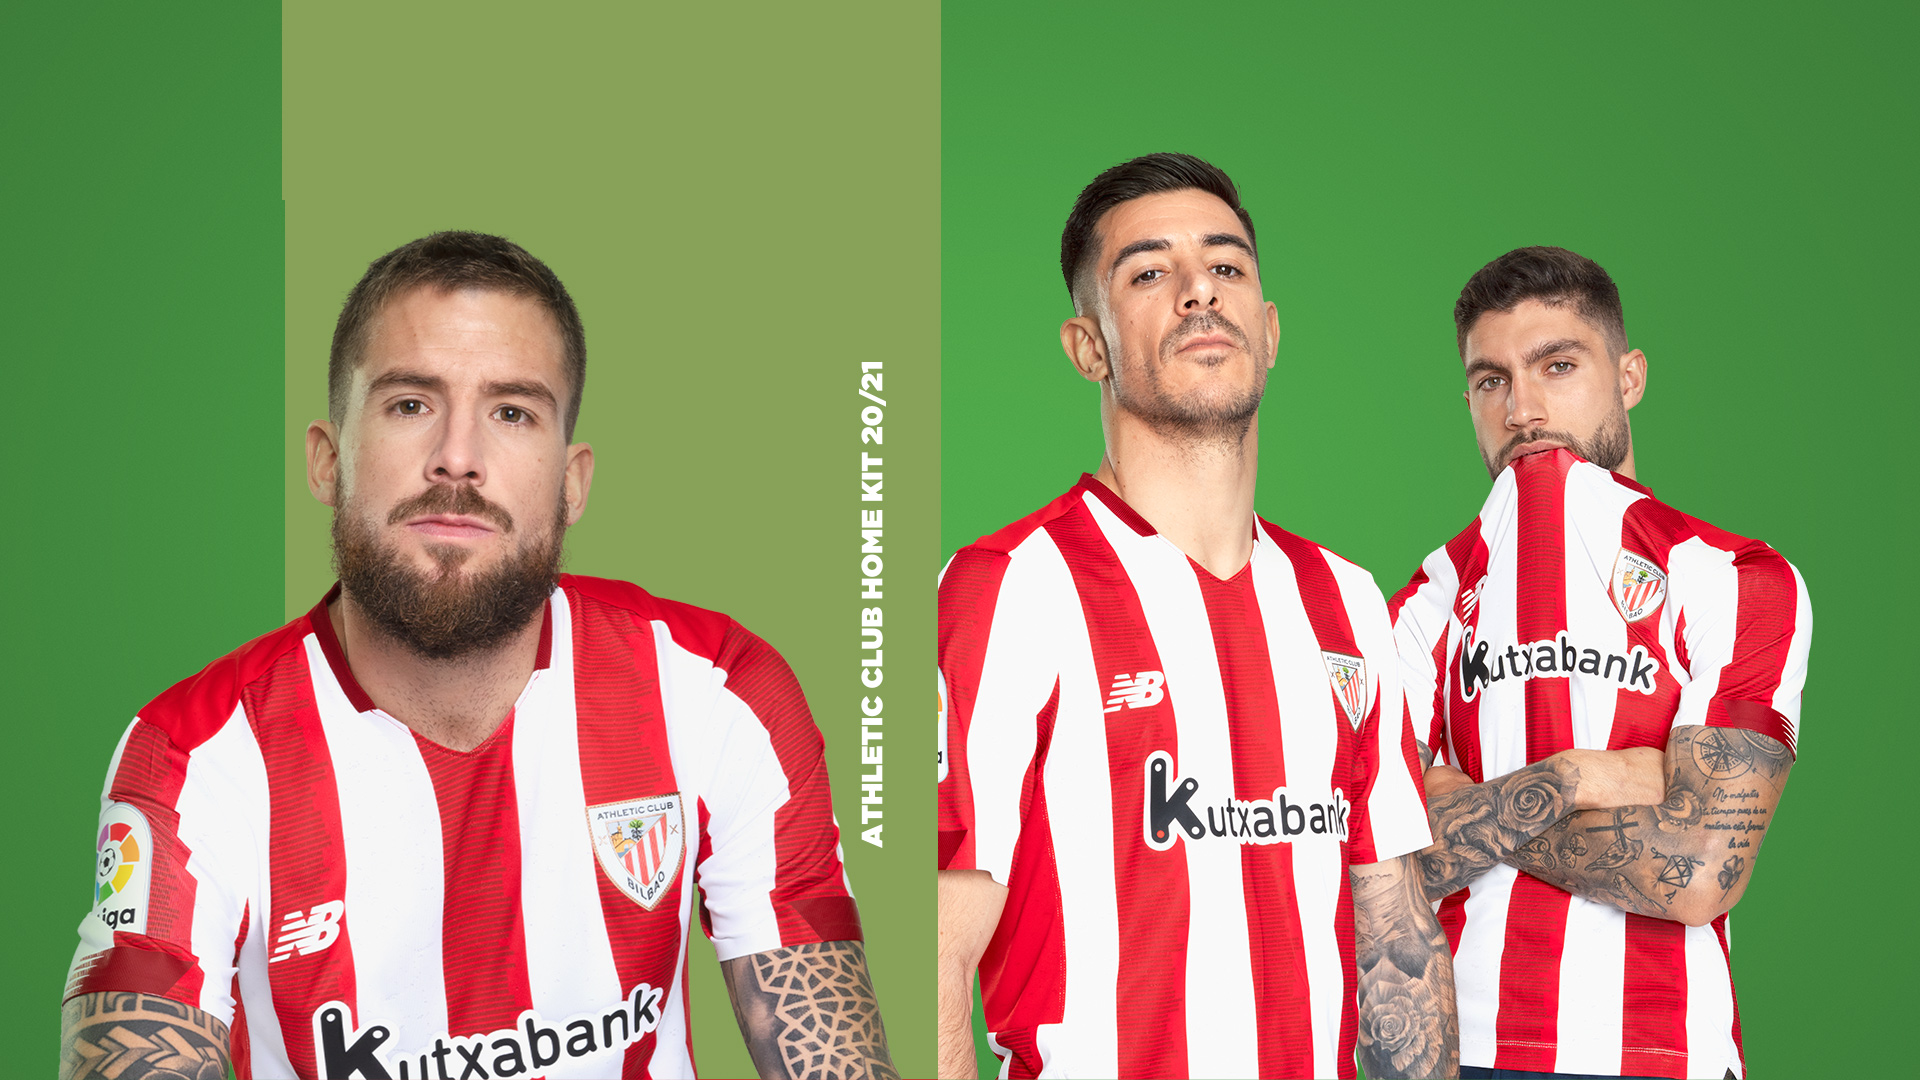 Athletic Club's 2020-21 home kit is out now